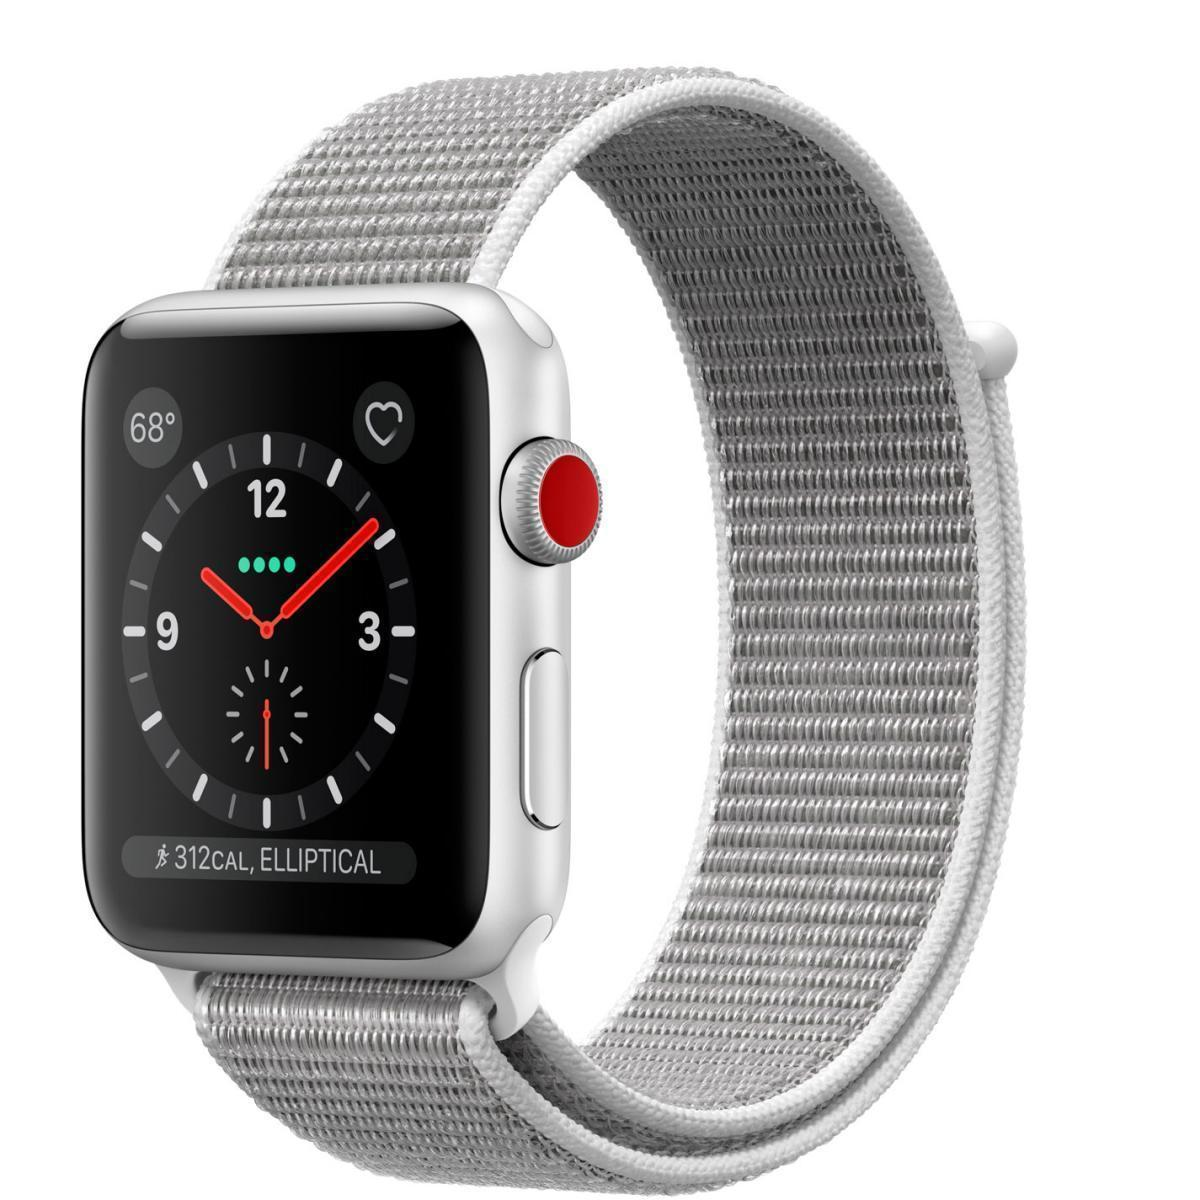 Apple Watch Series 3 (GPS) 42mm Silver Aluminum Case with Seashell Sport Loop MQK52Apple Watch Series 3<br>Apple Watch Series 3 (GPS) 42mm Silver Aluminum Case with Seashell Sport Loop MQK52<br>